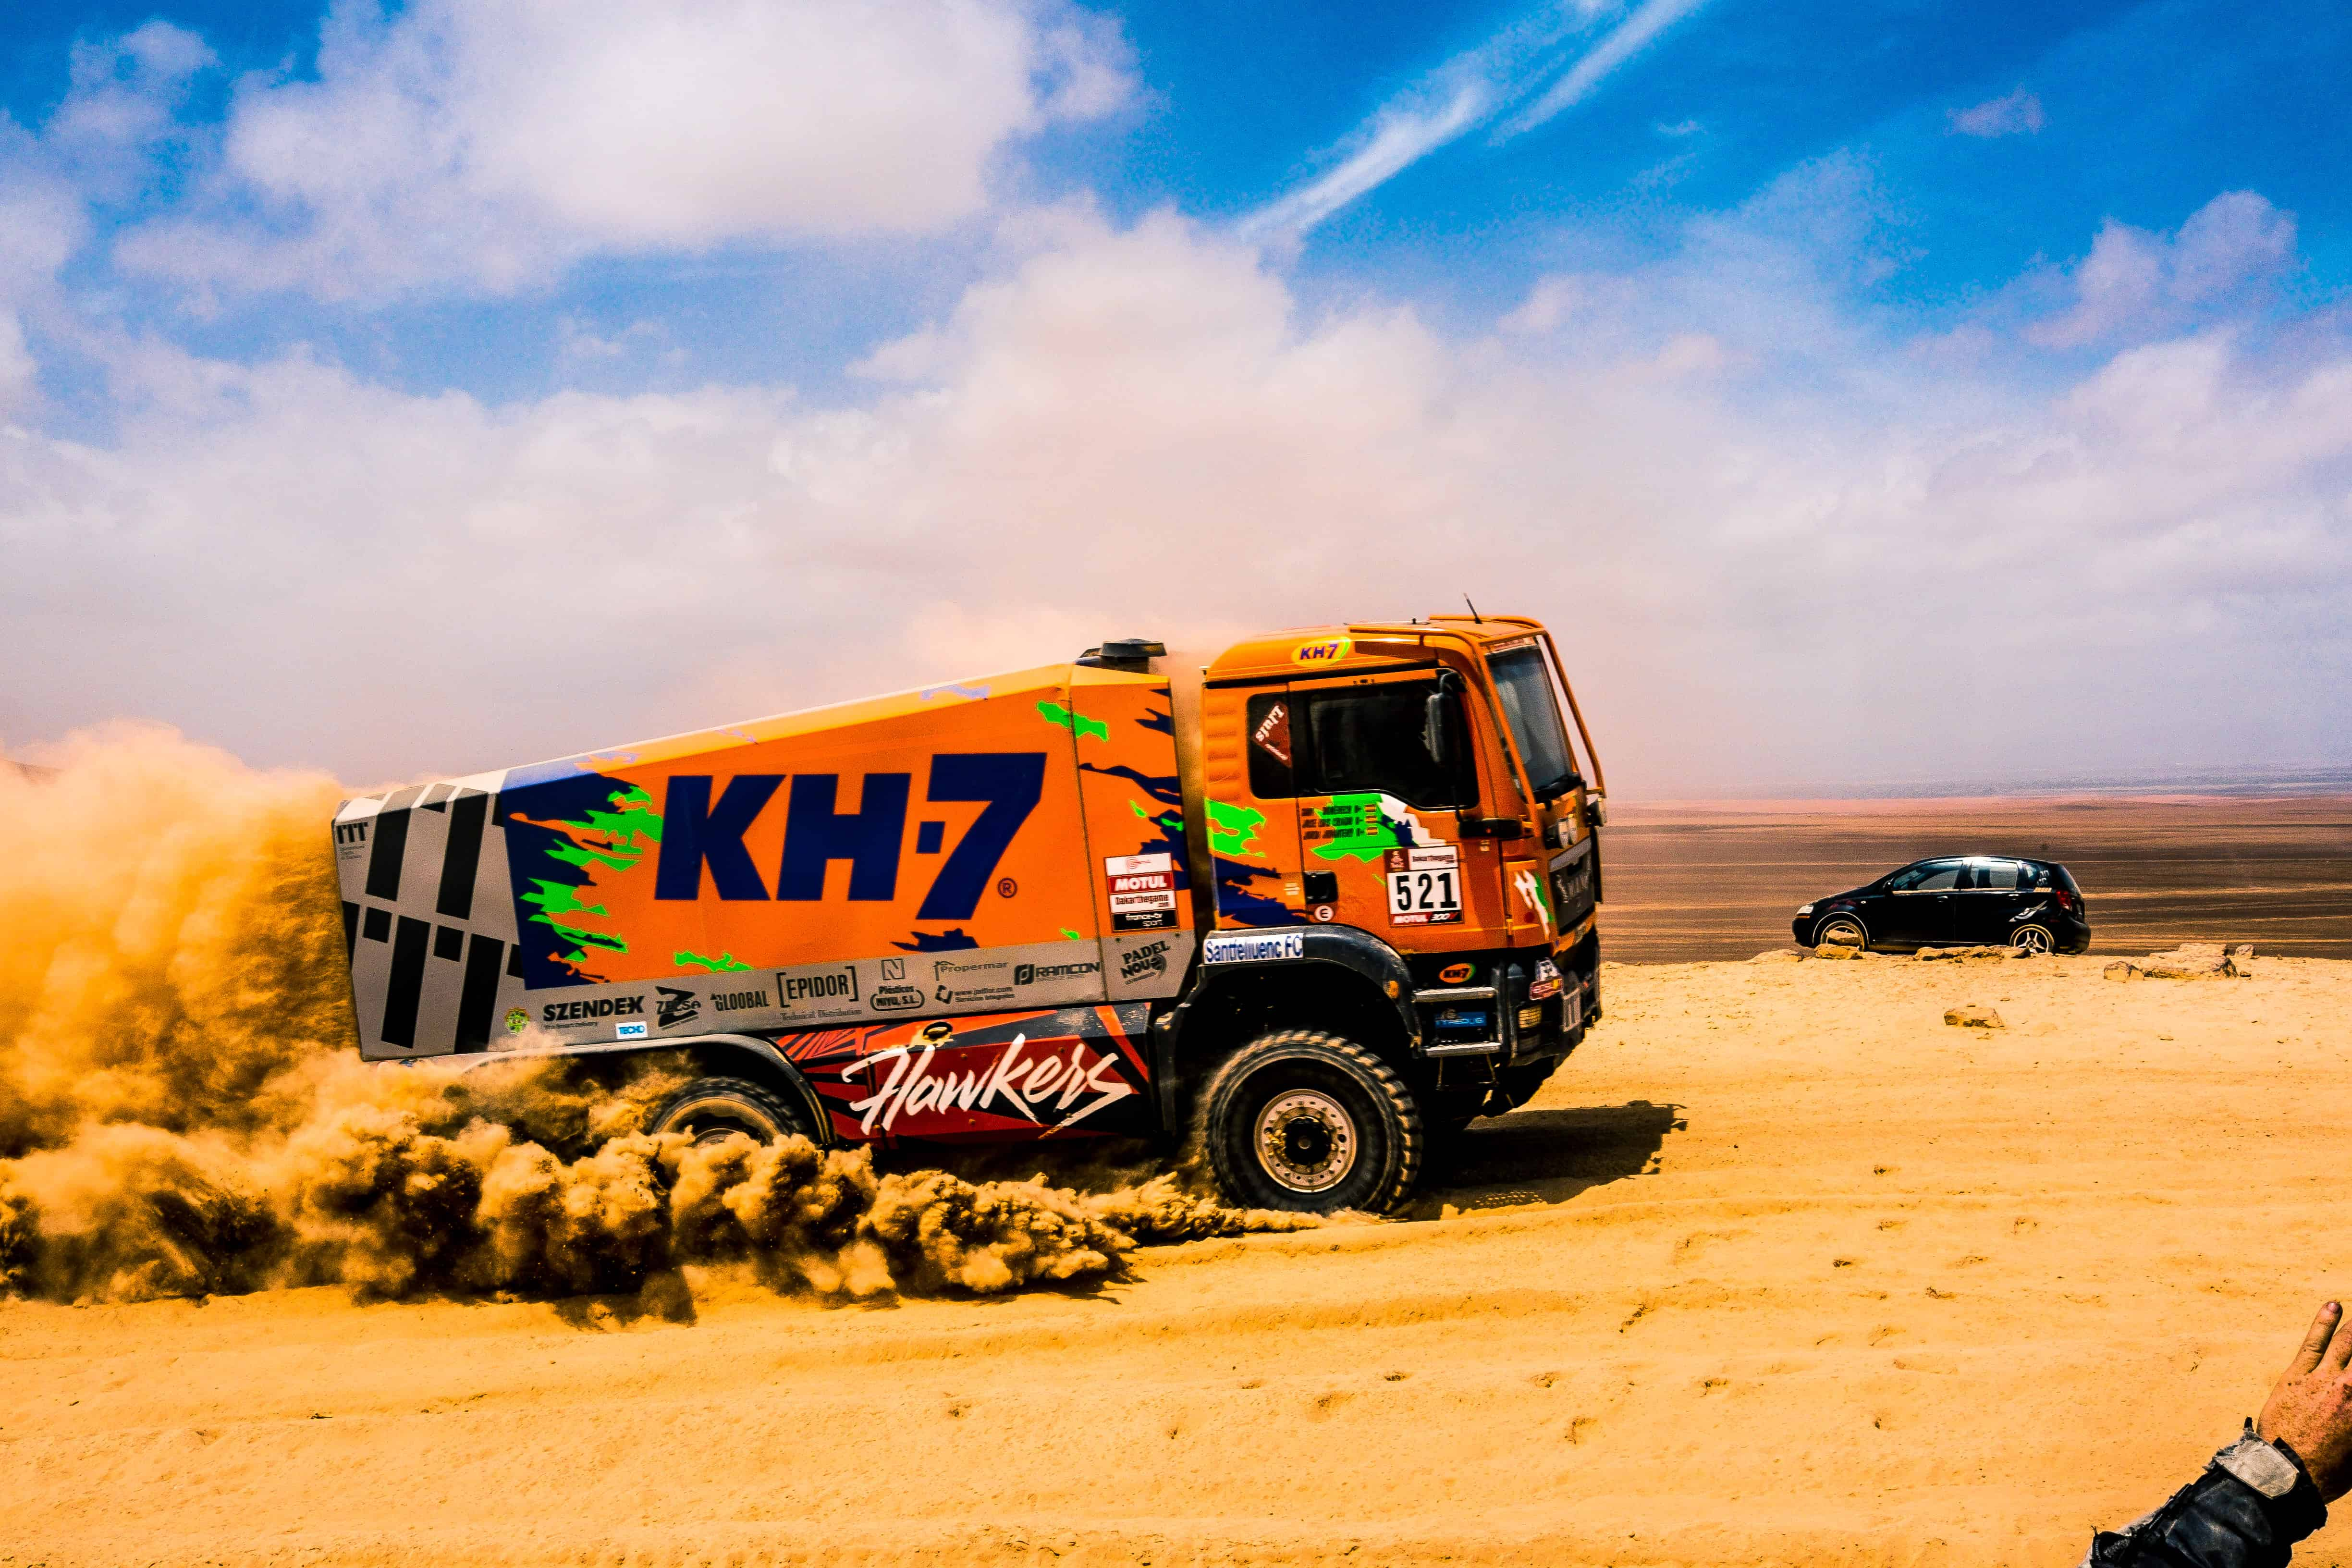 a competitor truck in the dakar rally 2019